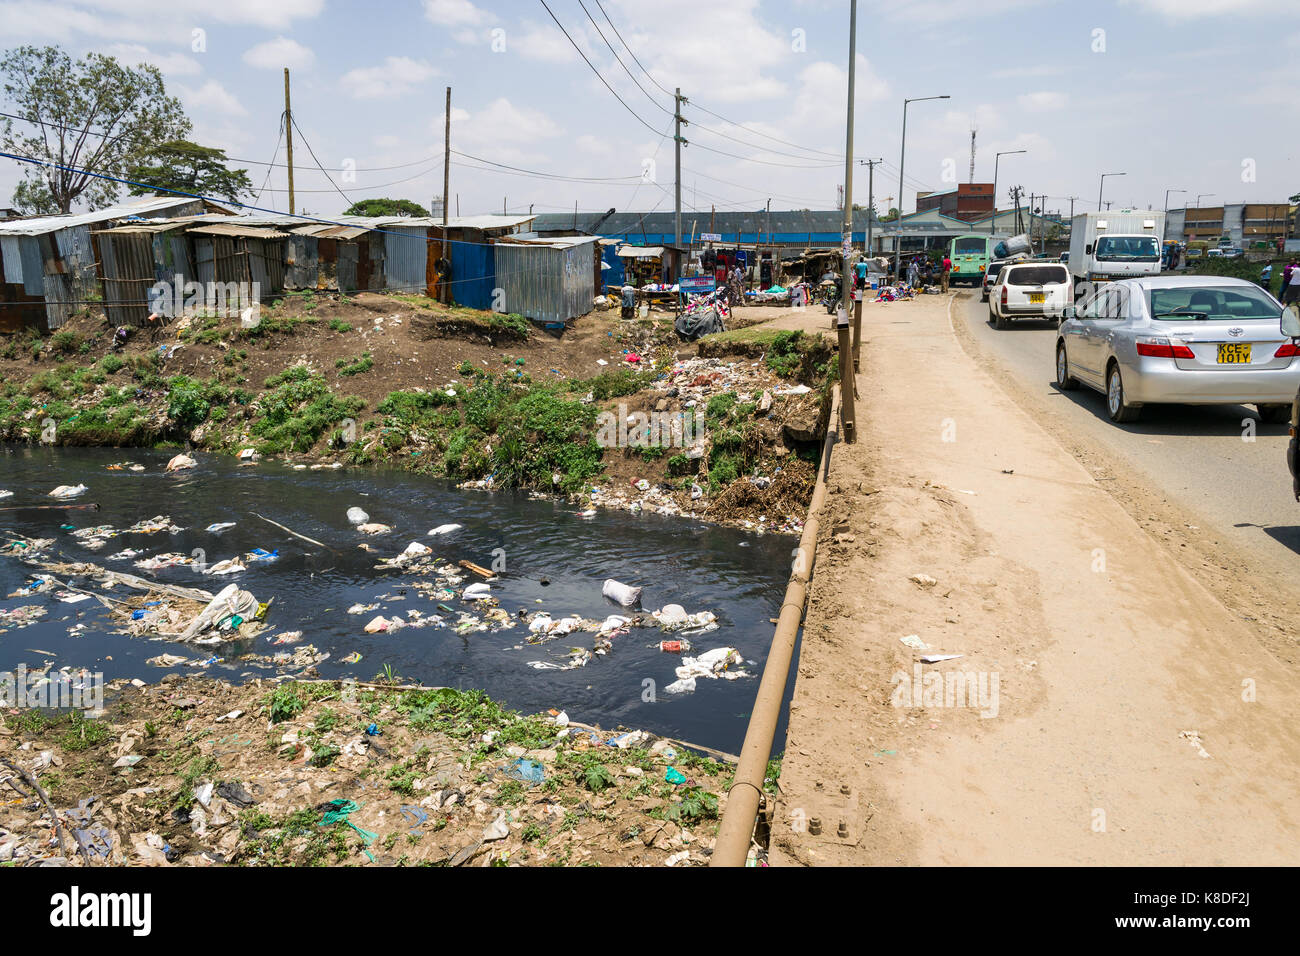 Enterprise road bridge crosses the Ngong river which is polluted with rubbish, plastic waste and garbage, slum shacks - Stock Image